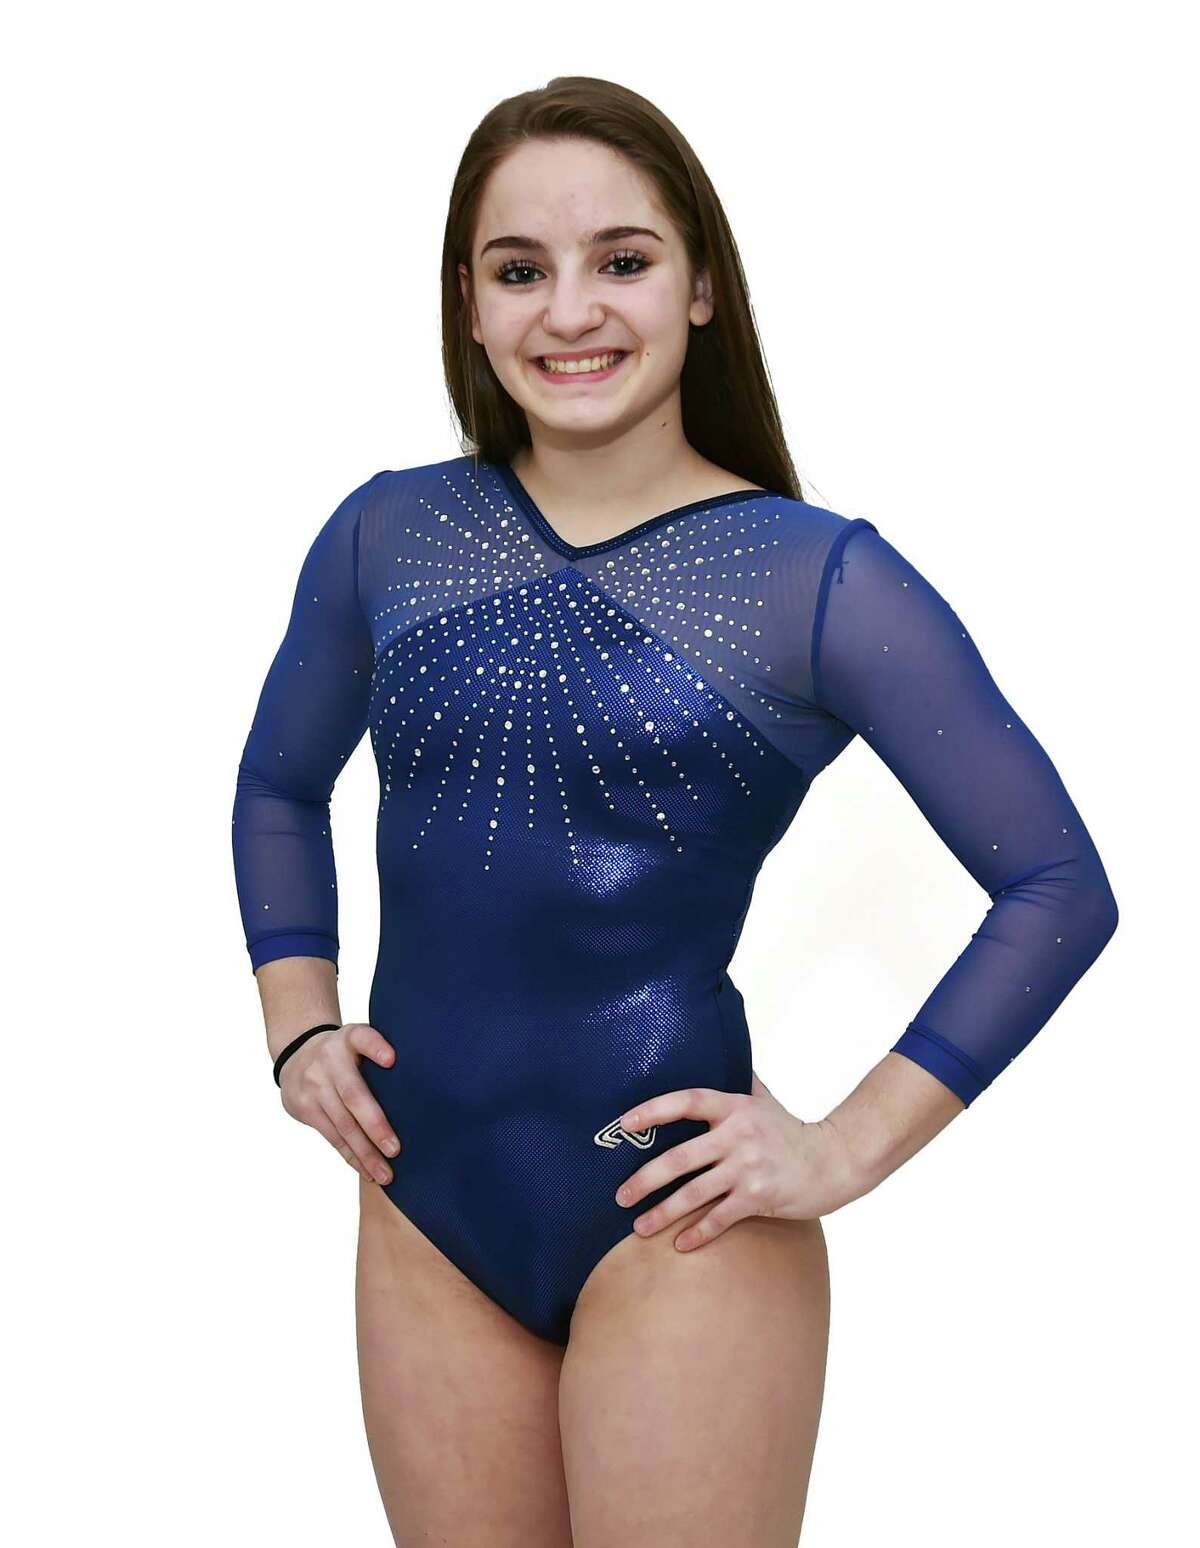 Emily Baktis - Oxford High School All-Area Gymnastics Thursday, March 23, 2017 (Catherine Avalone/New Haven Register)